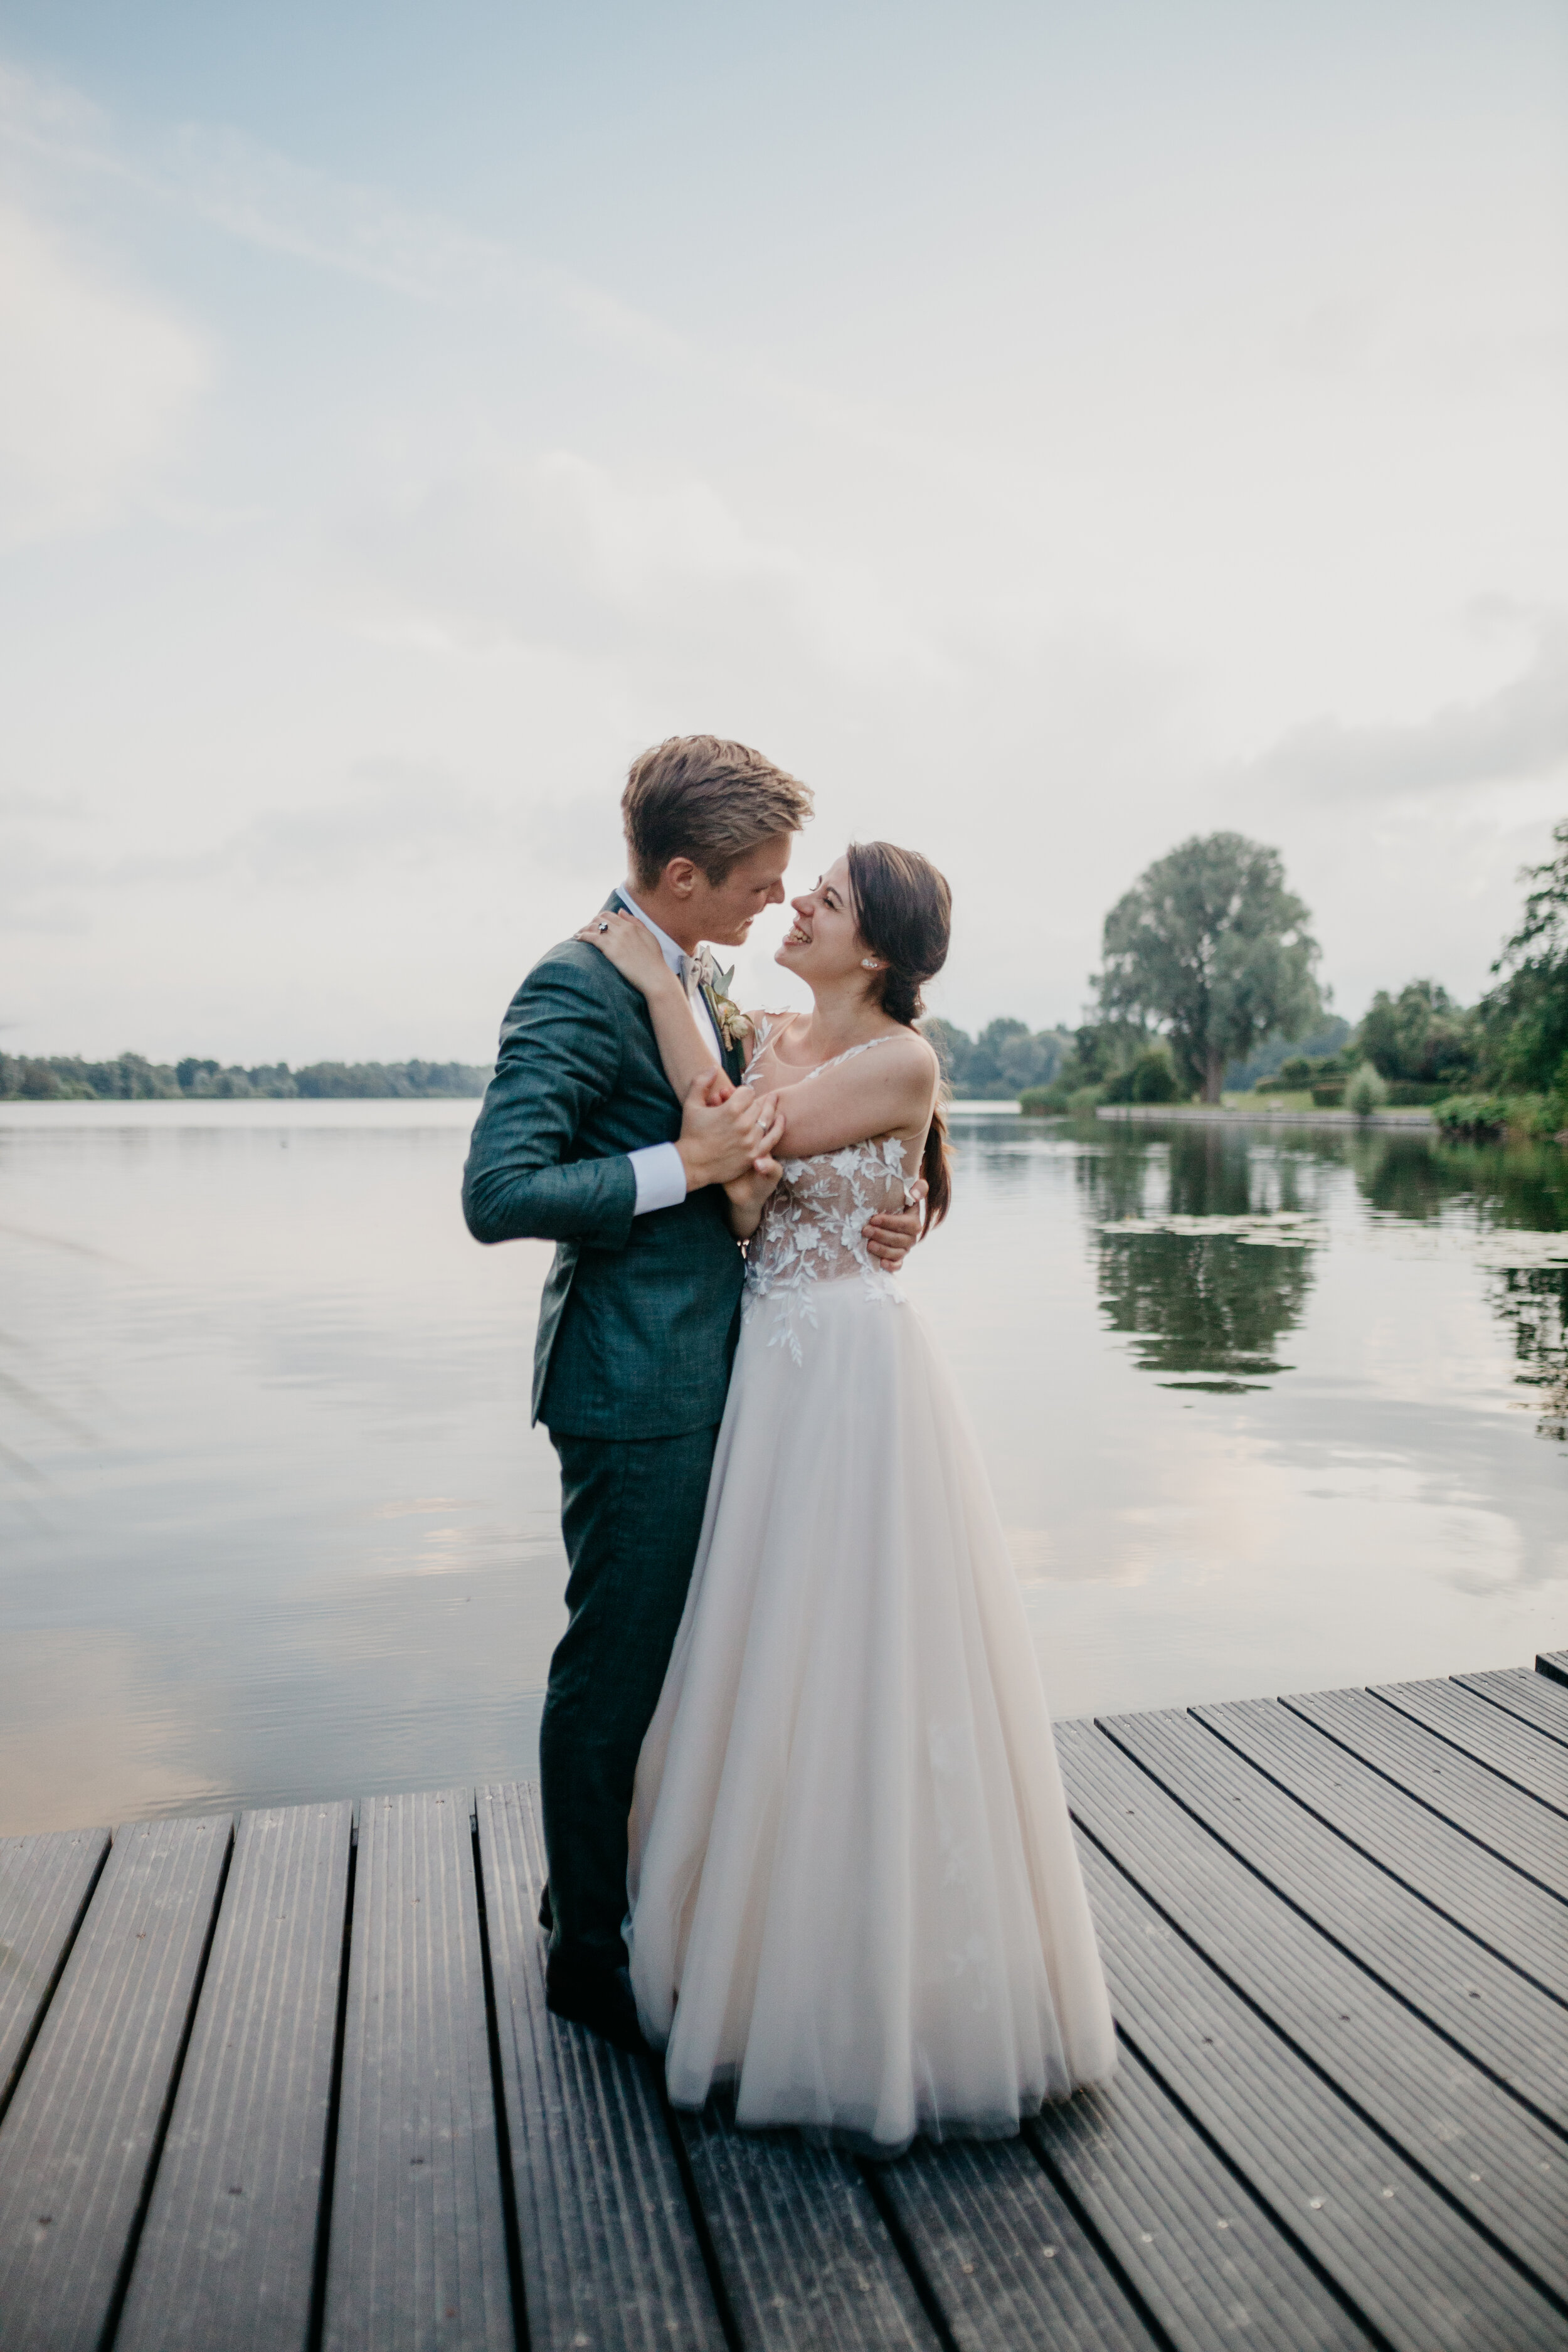 The connections we make, listening to your stories and the moments we are fortunate to capture of your day is what keeps us inspired. Our passion is to capture genuine hugs, smiles and tears, honest big and small moments filled with emotion.In short, we simply love love. - Learn more about us...